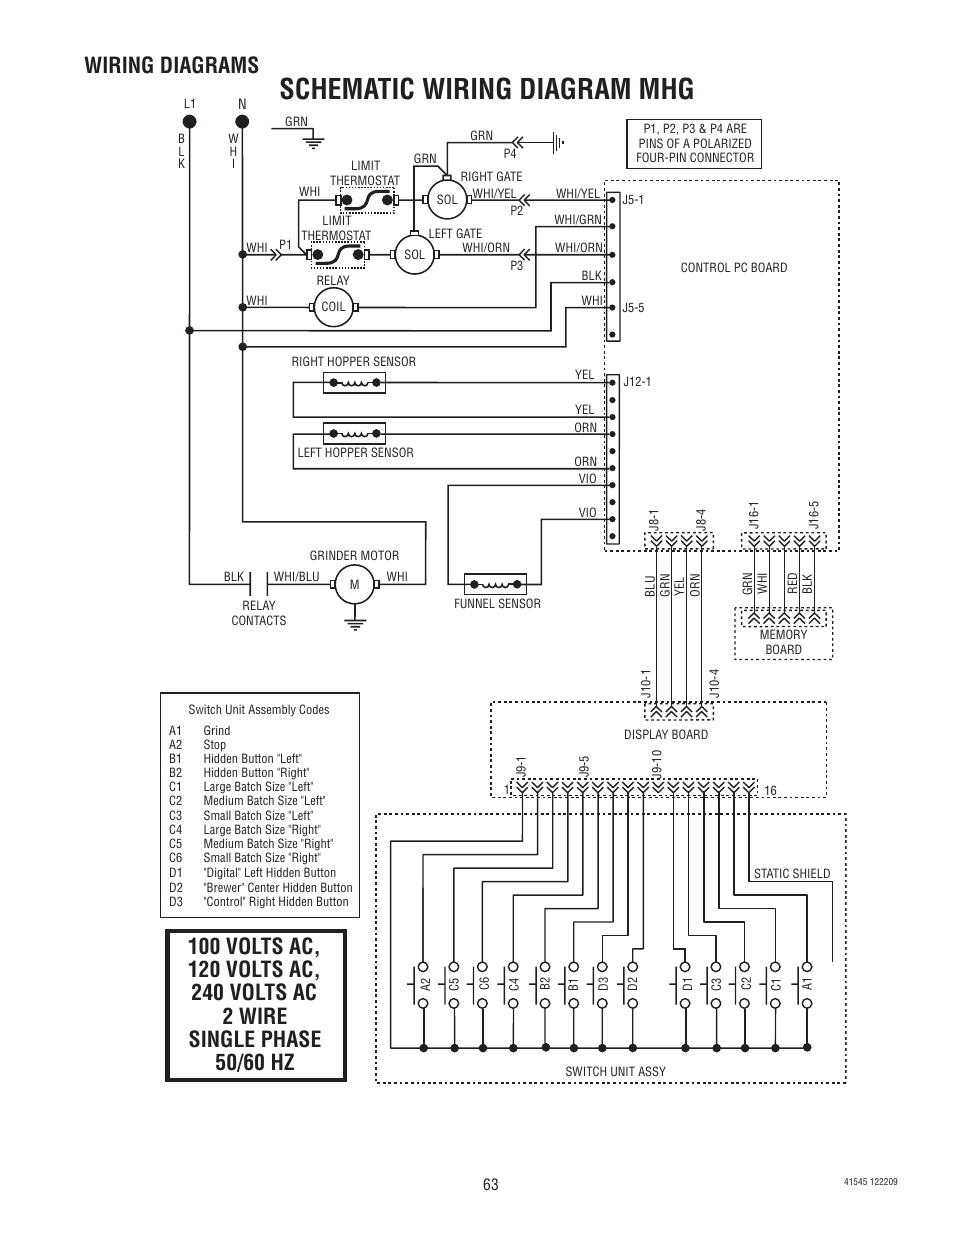 hight resolution of bunn mhg wiring diagram wiring diagramschematic wiring diagram mhg wiring diagrams bunn g9 2t dbc